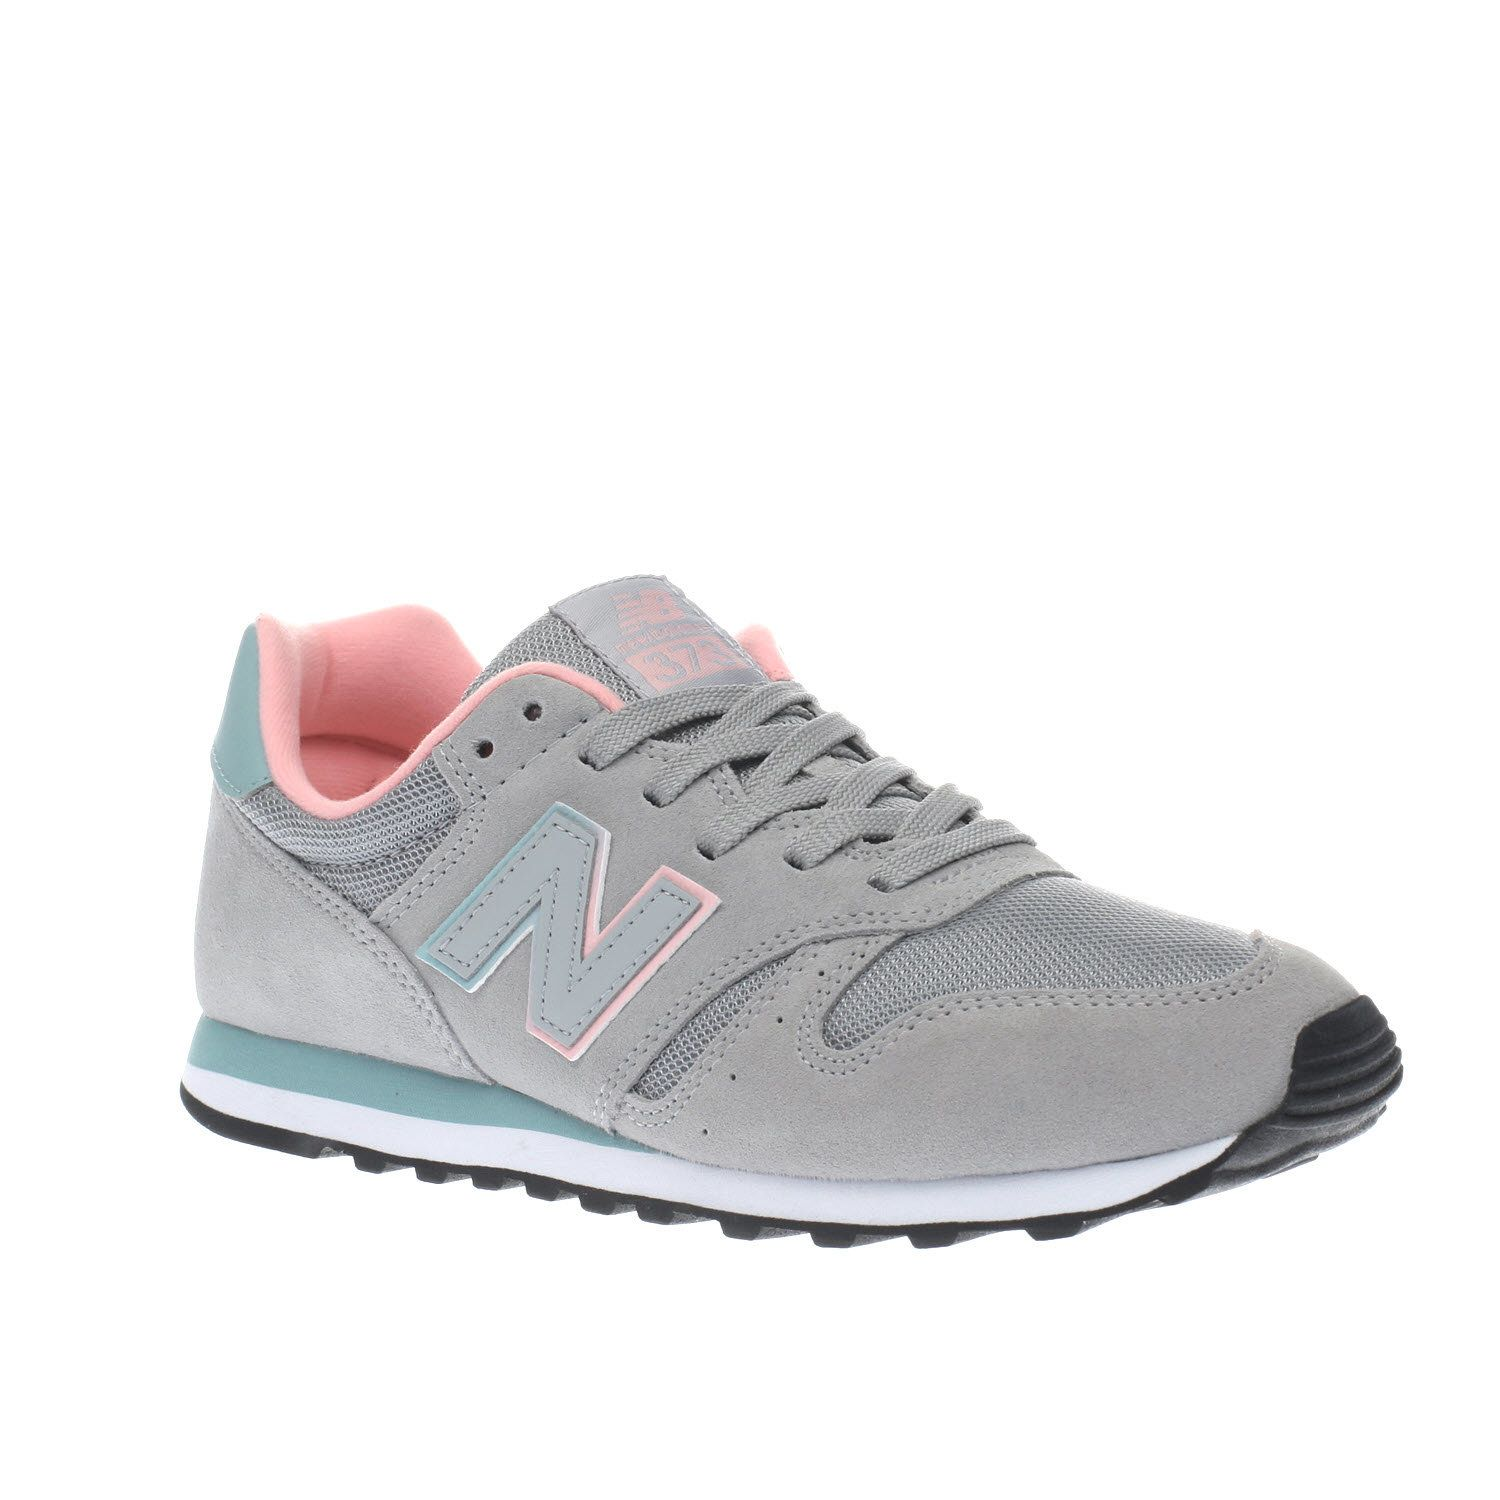 new balance 373 suede trainers